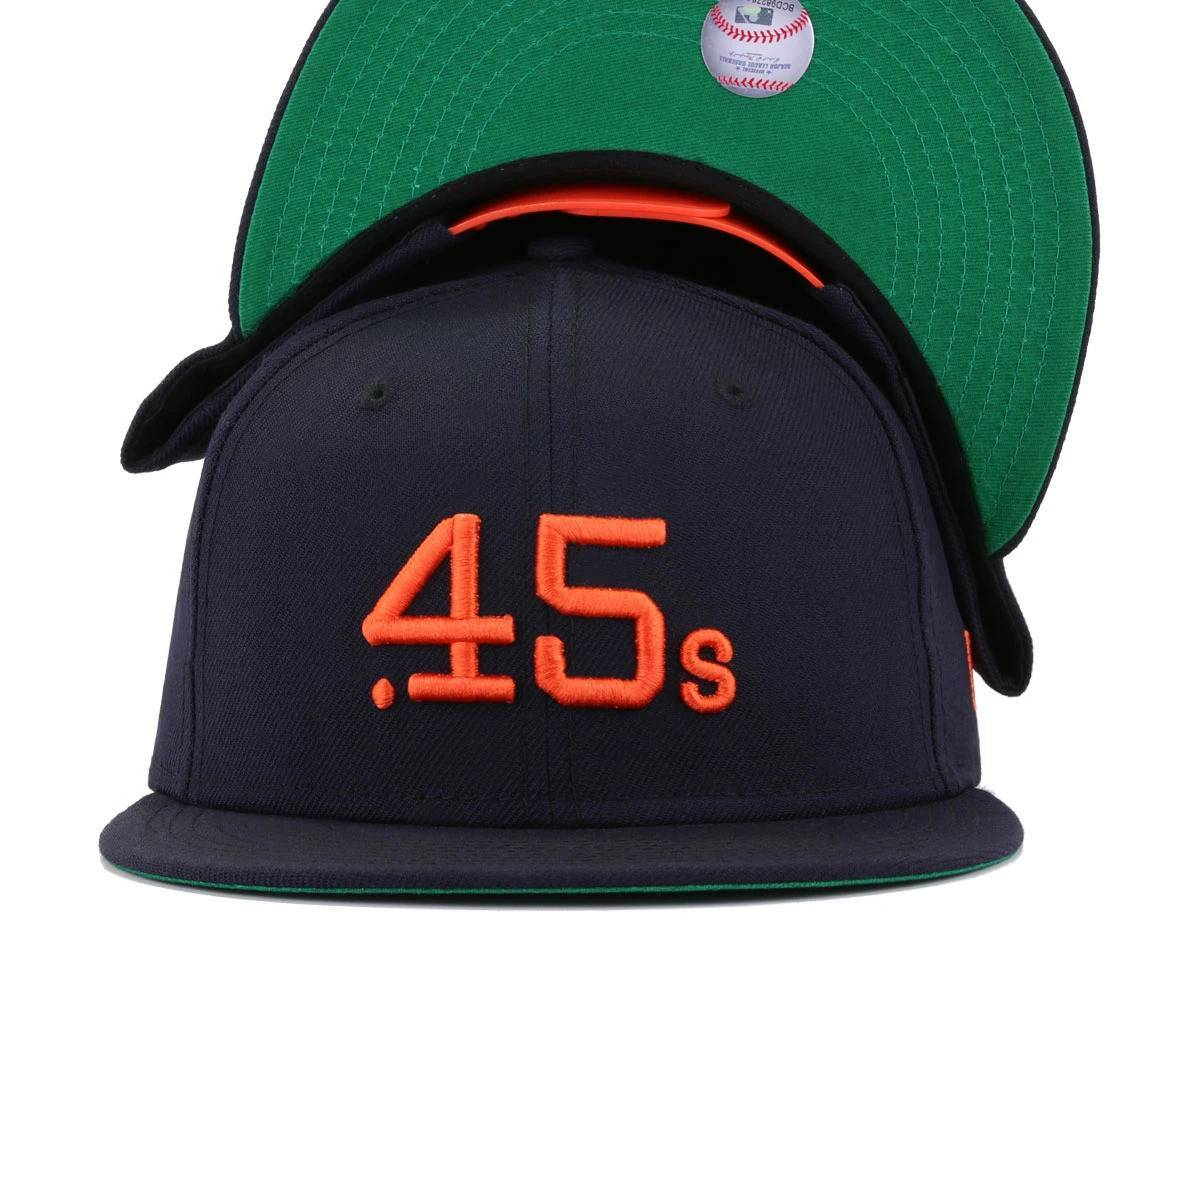 Houston Colt 45s Navy Cooperstown New Era 9Fifty Snapback